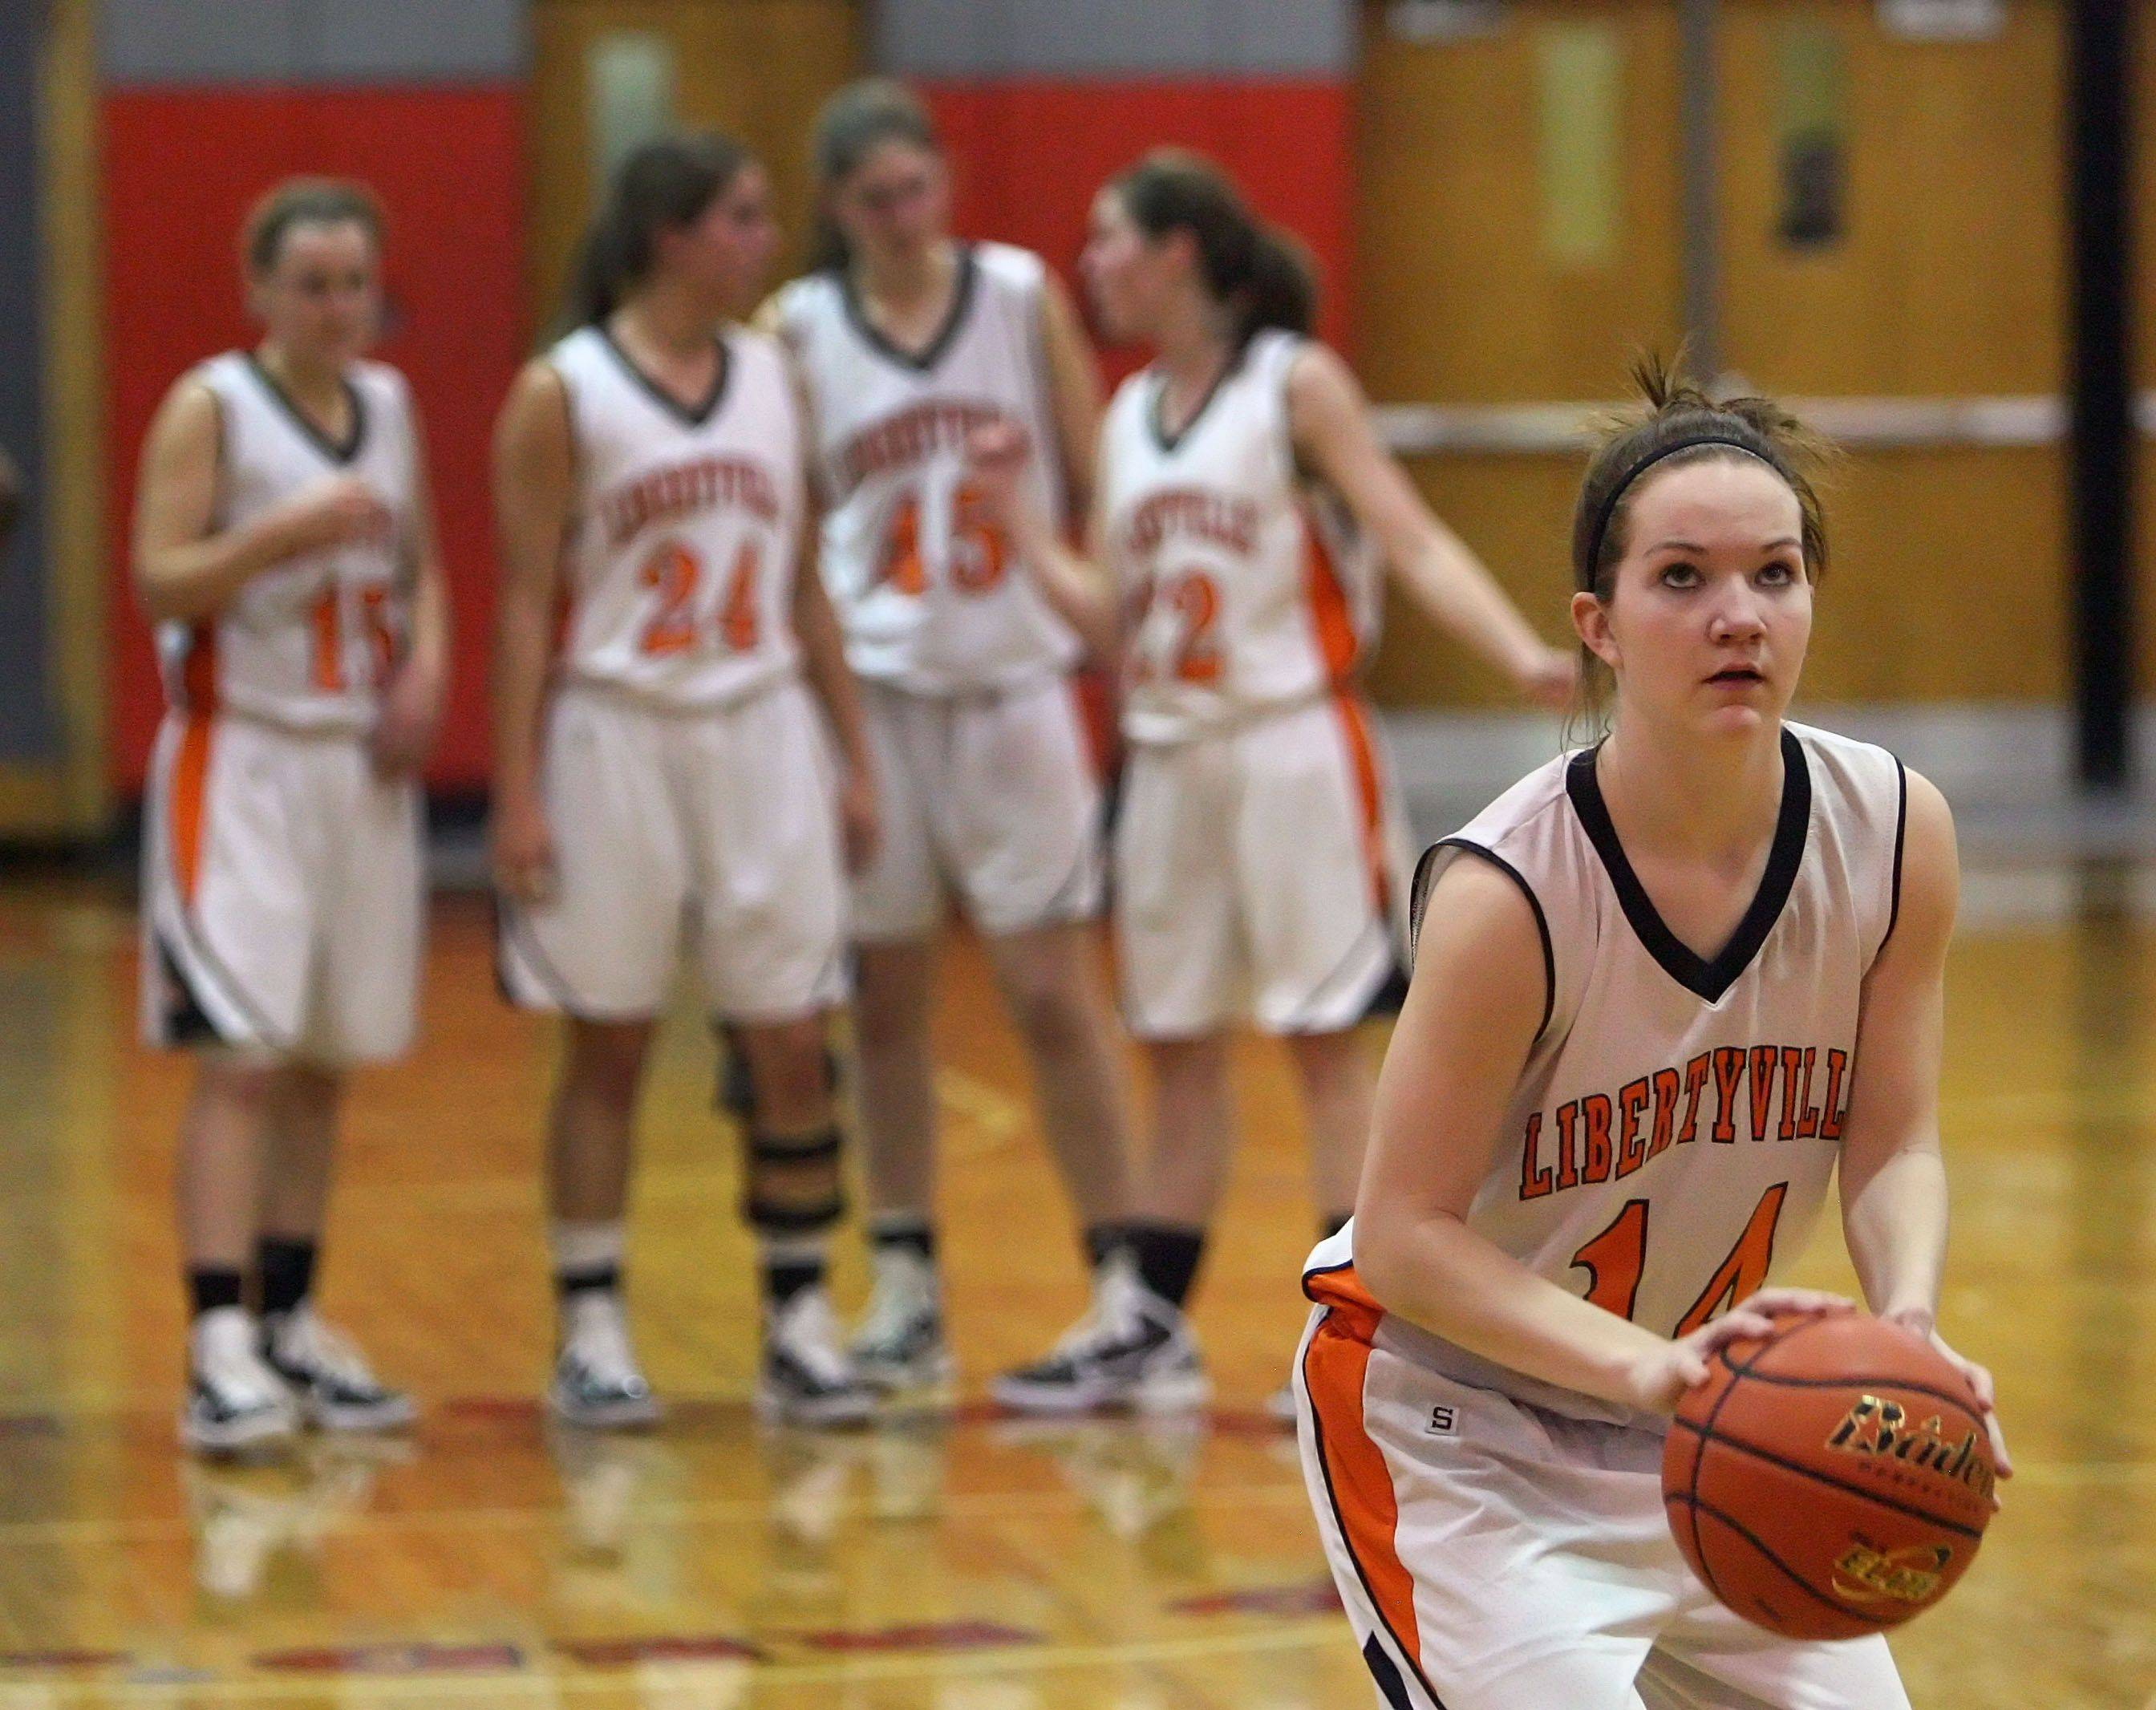 Libertyville's Savannah Trees shoots a free-throw after a technical foul was called .